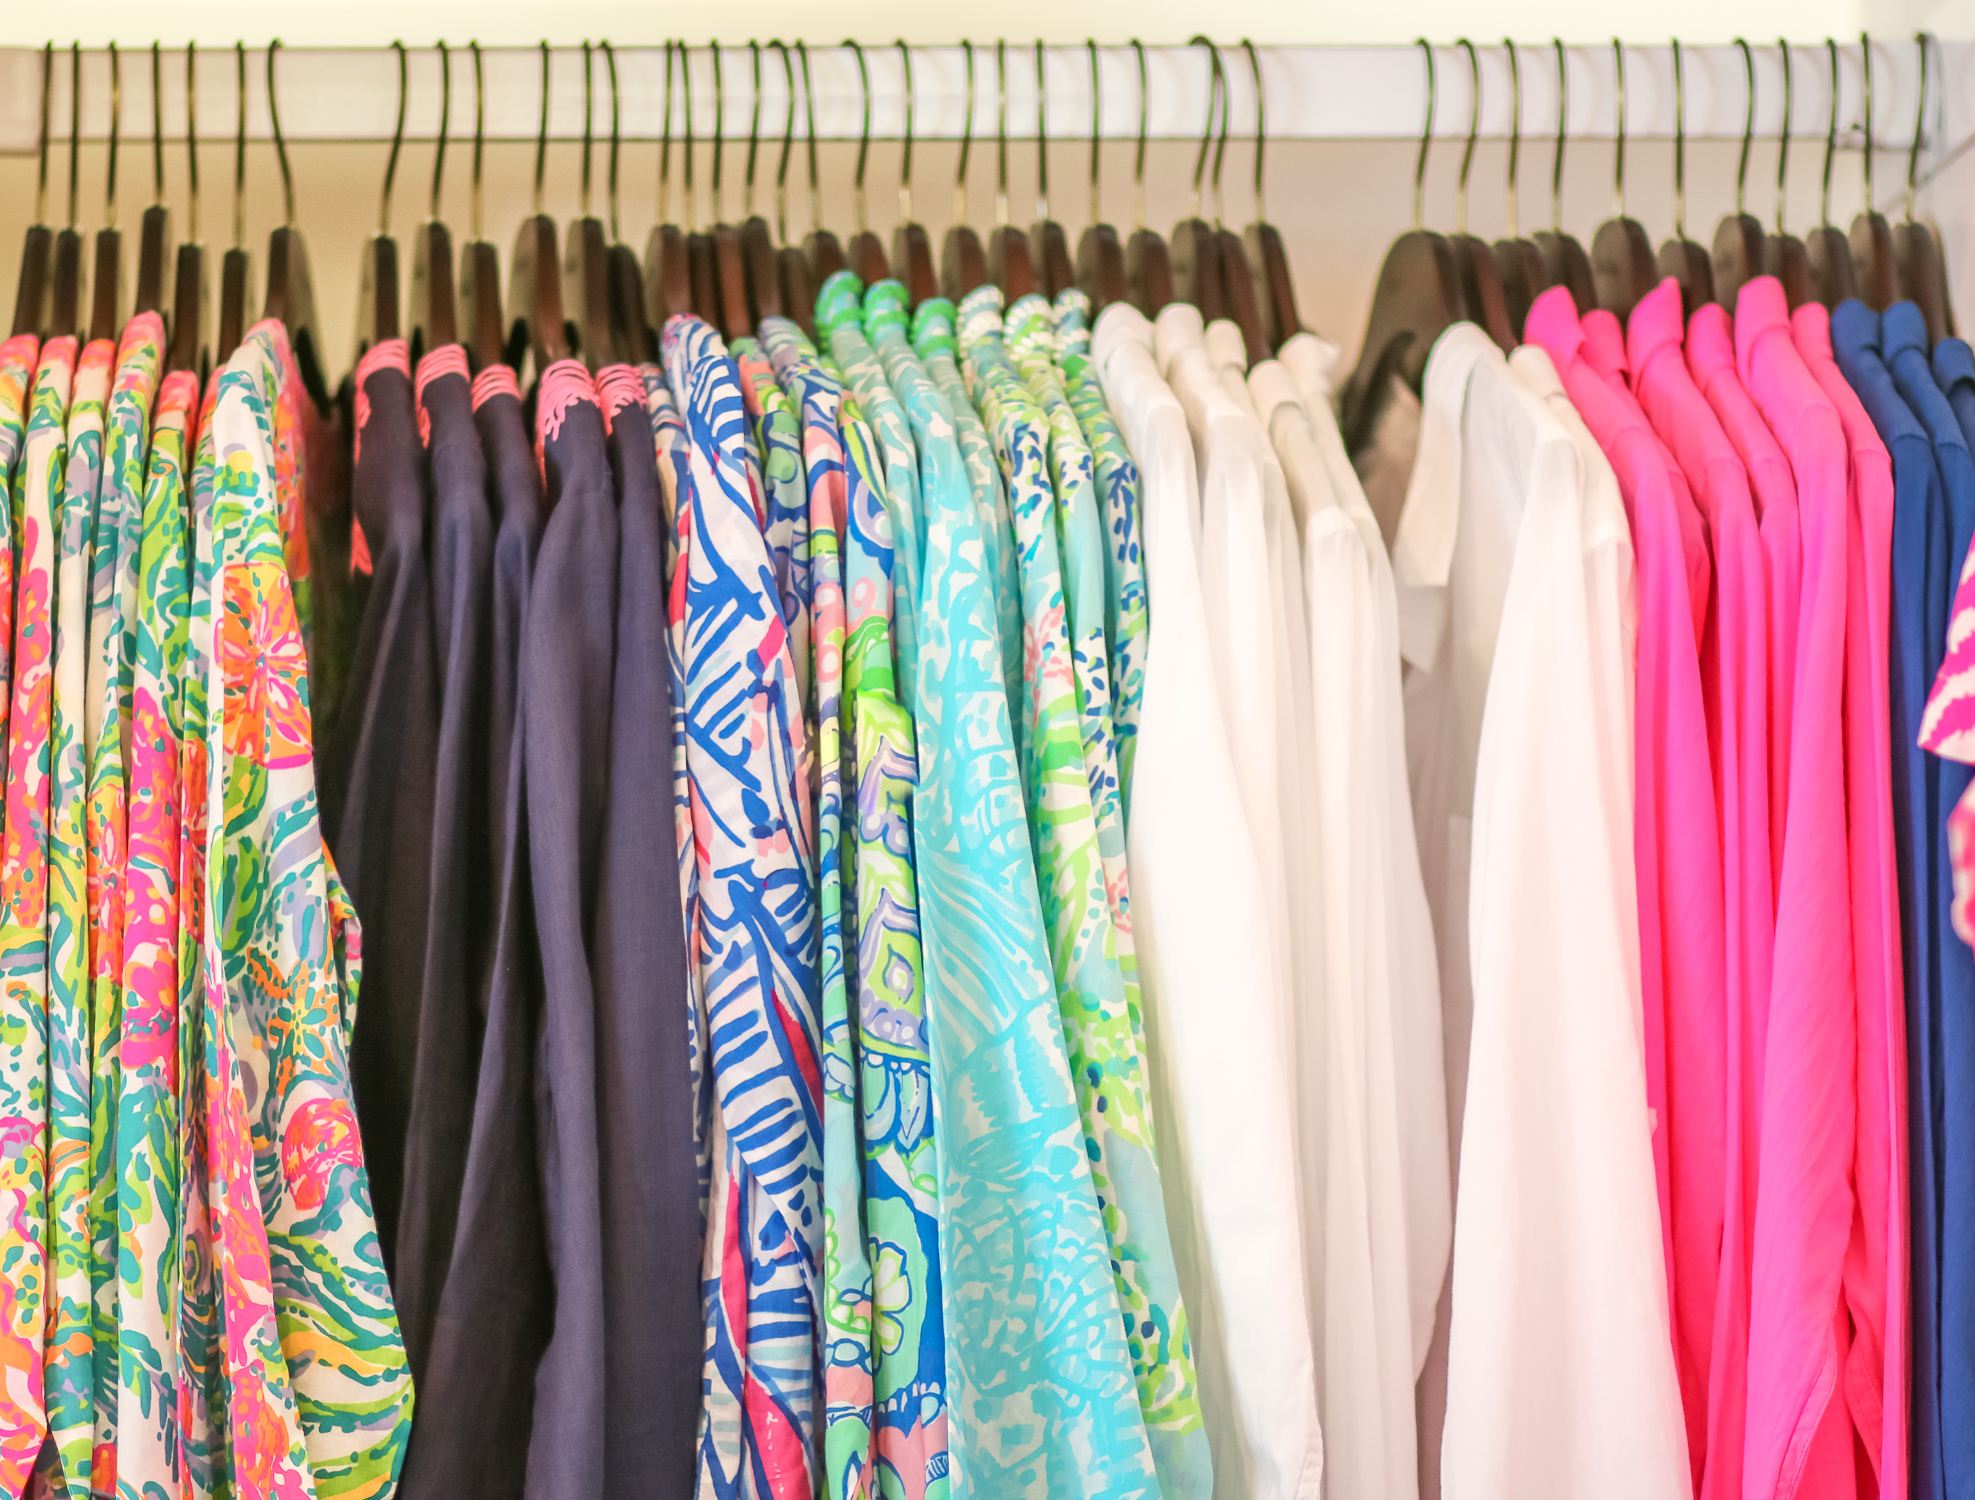 When is the Lilly Pulitzer After Party Sale exactly? This post shares all the most important details about the sale, including the dates, shopping tips, and things to know (like the return policy).